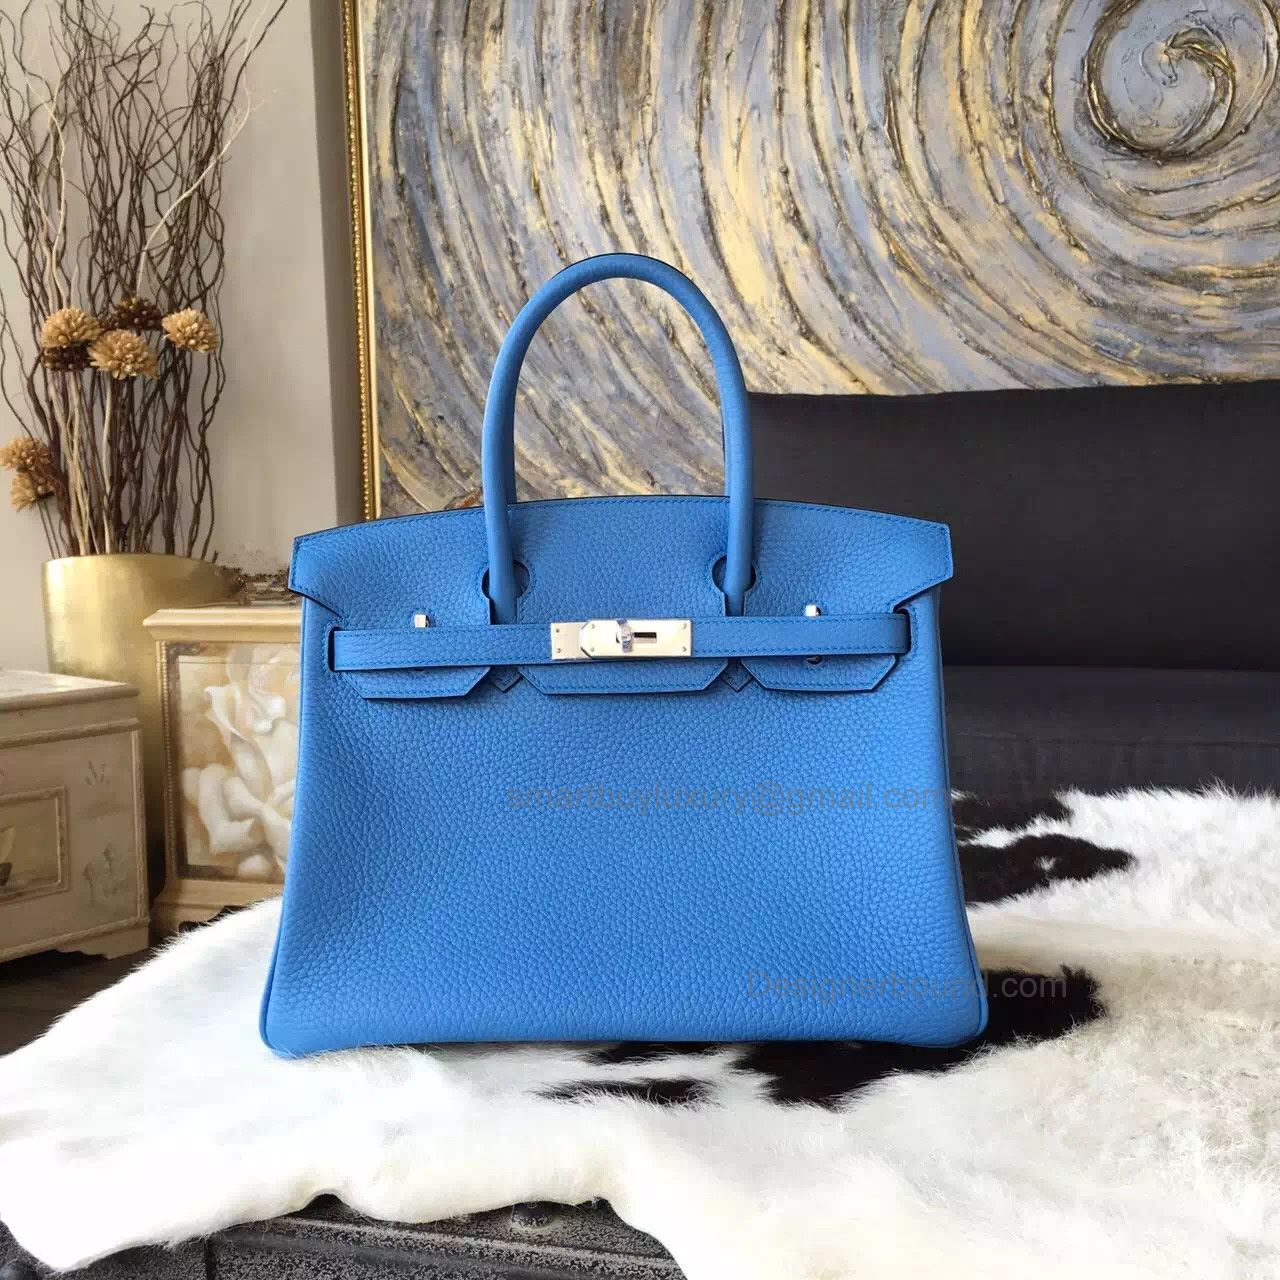 Hand Stitched Hermes Birkin 30 Bag in 2t Blue Paradise Clemence Calfskin SHW